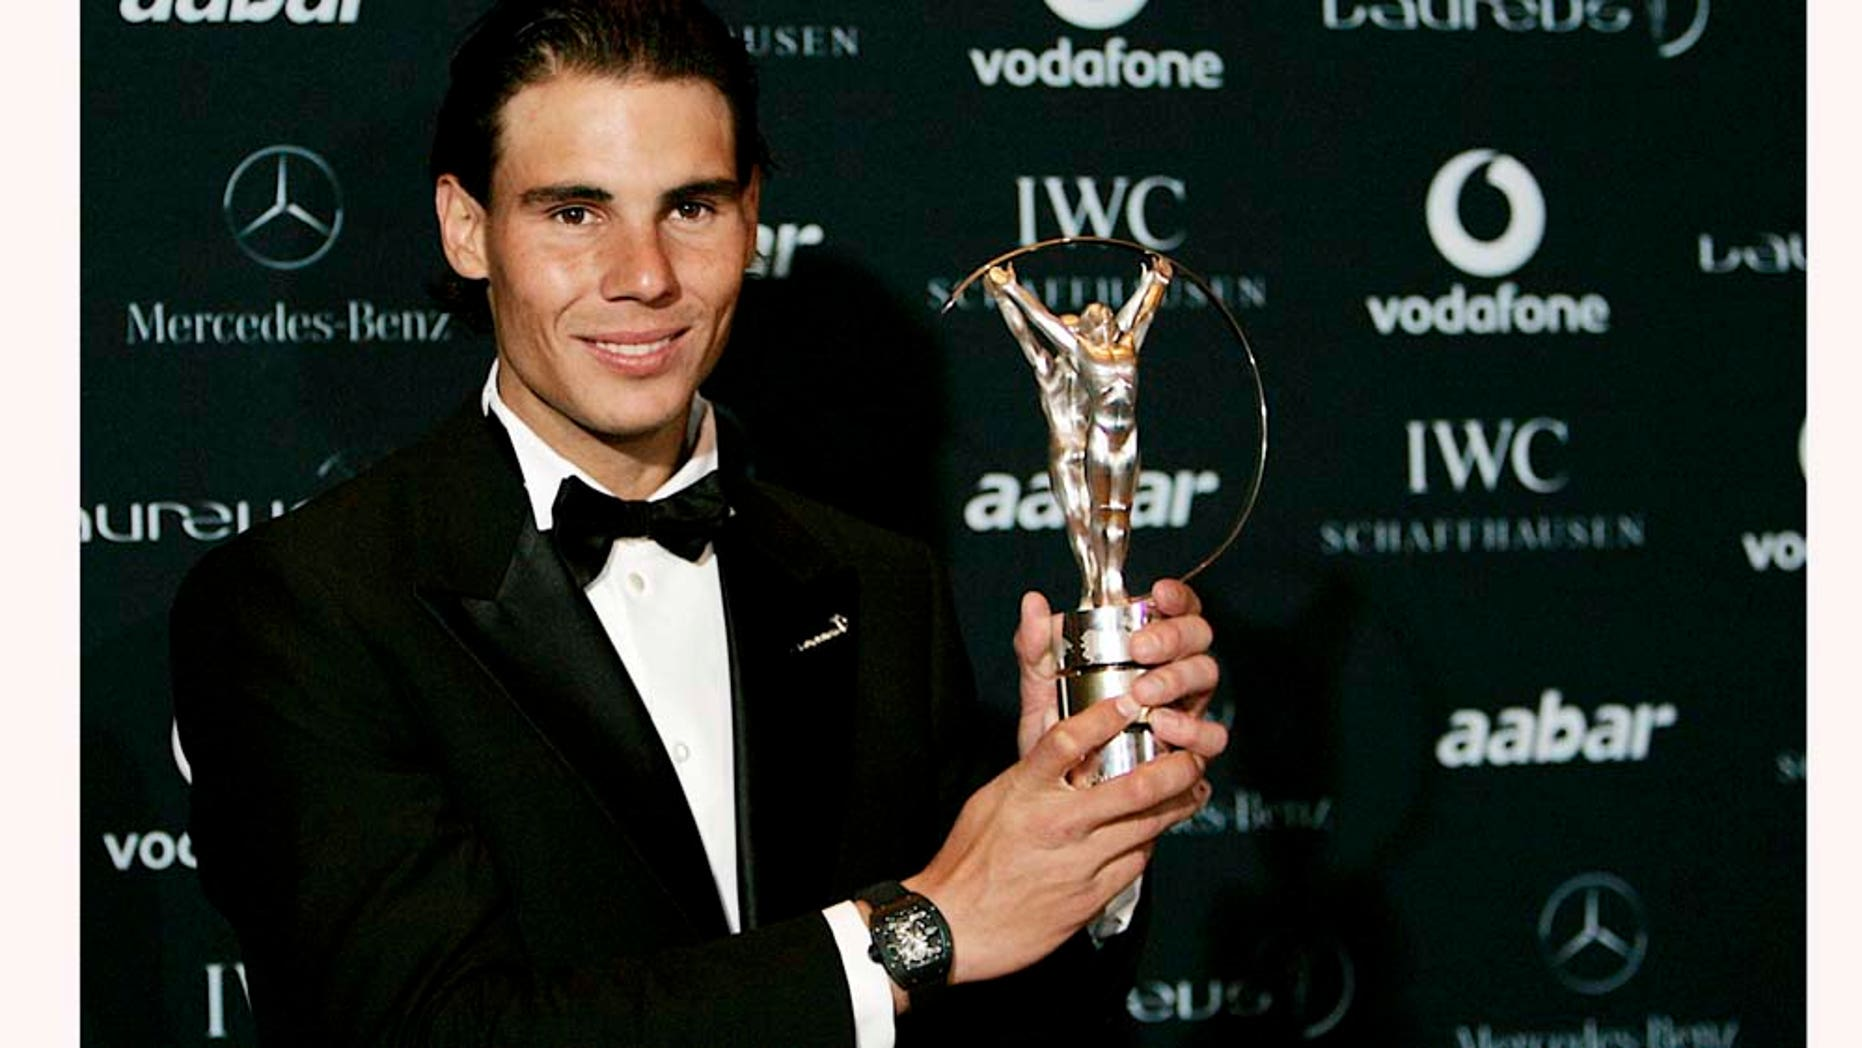 Rafael Nadal holds the trophy after winning the Laureus World Sportsman of the Year at the Laureus Awards in Abu Dhabi, United Arab Emirates, Monday Feb. 7, 2011. (AP Photo/Nousha Salimi)